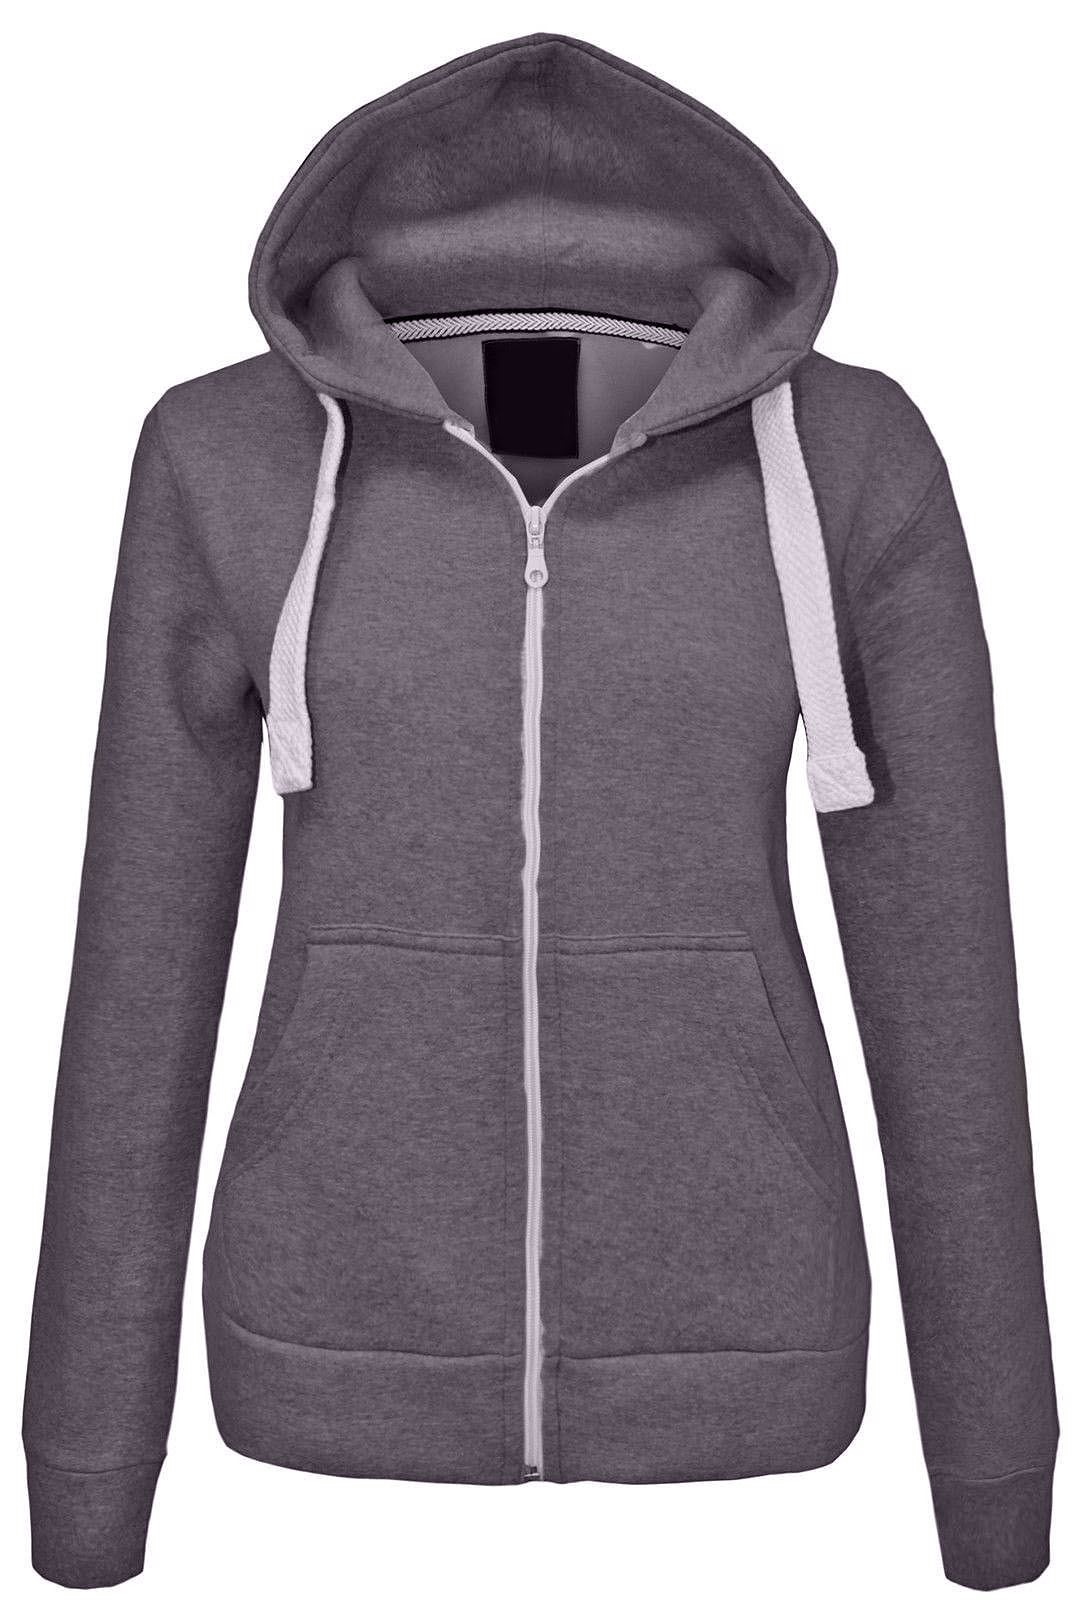 Blank Pullover Hoodies with Factory Direct Bulk Savings. Shop from our giant selection of blank pullover hoodies from the brands you know including Hanes, Gildan, and Champion just to name a few.